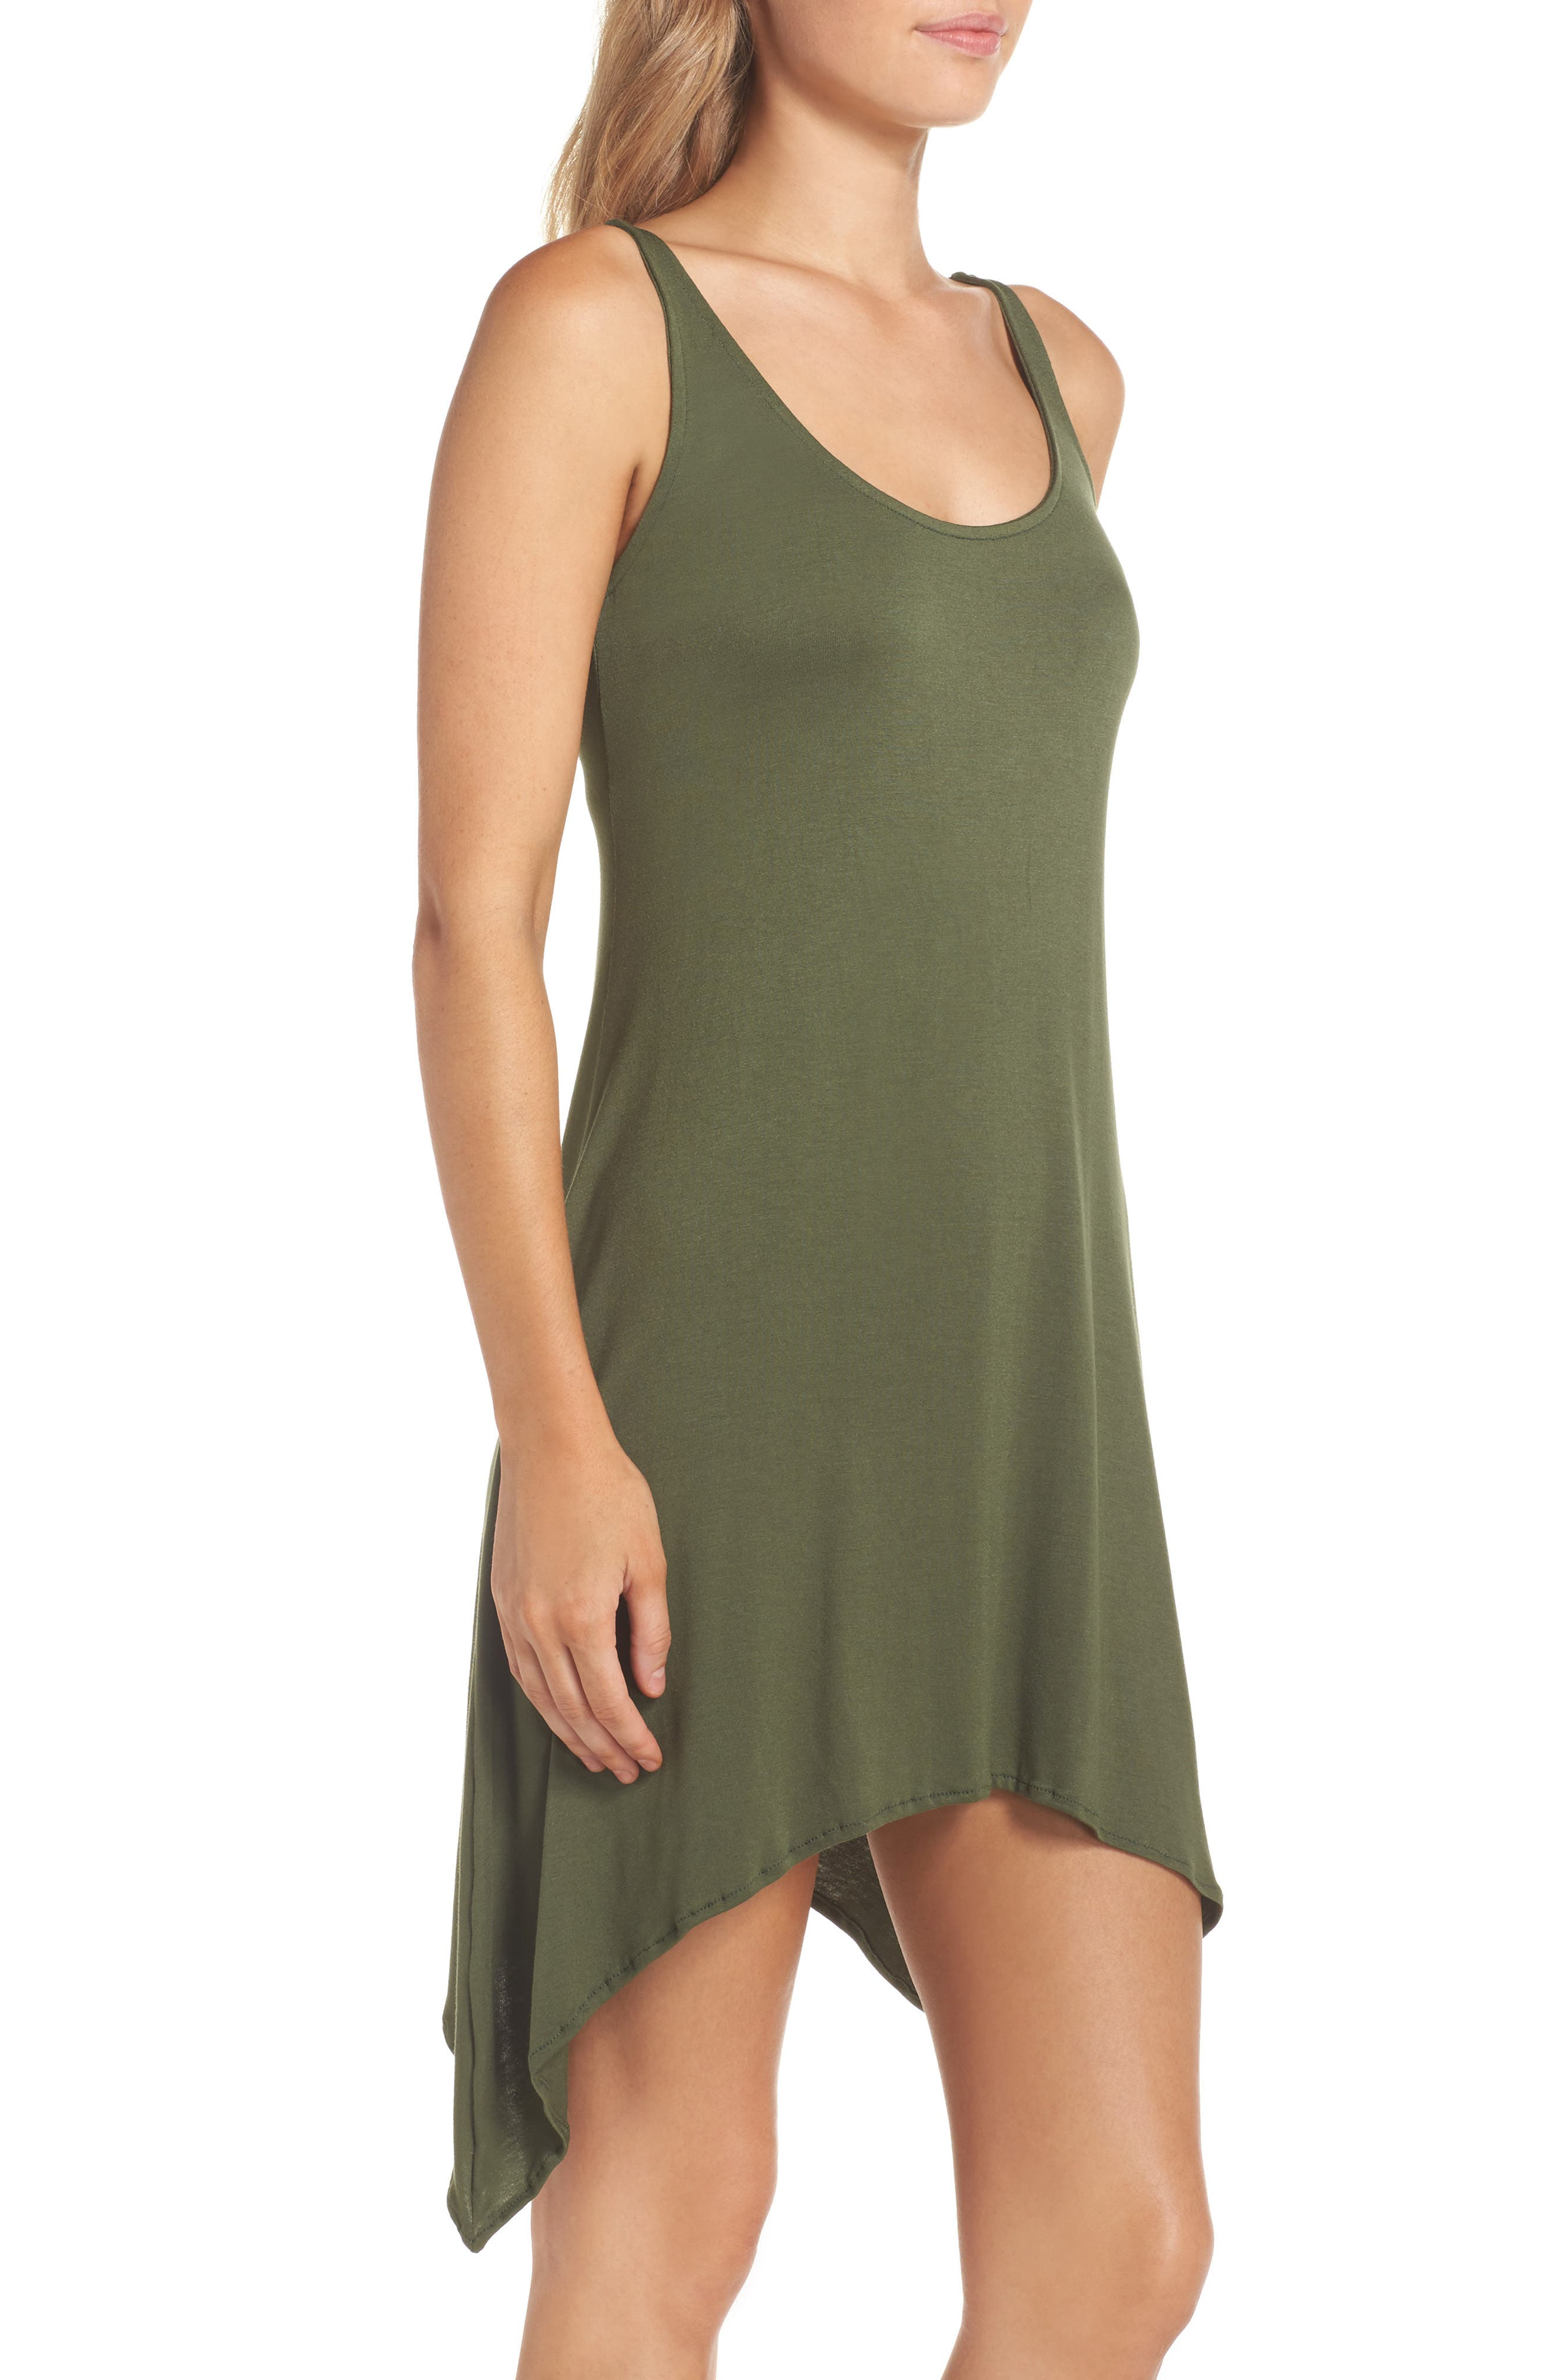 Take Cover Cover-Up Dress,                             Alternate thumbnail 3, color,                             302